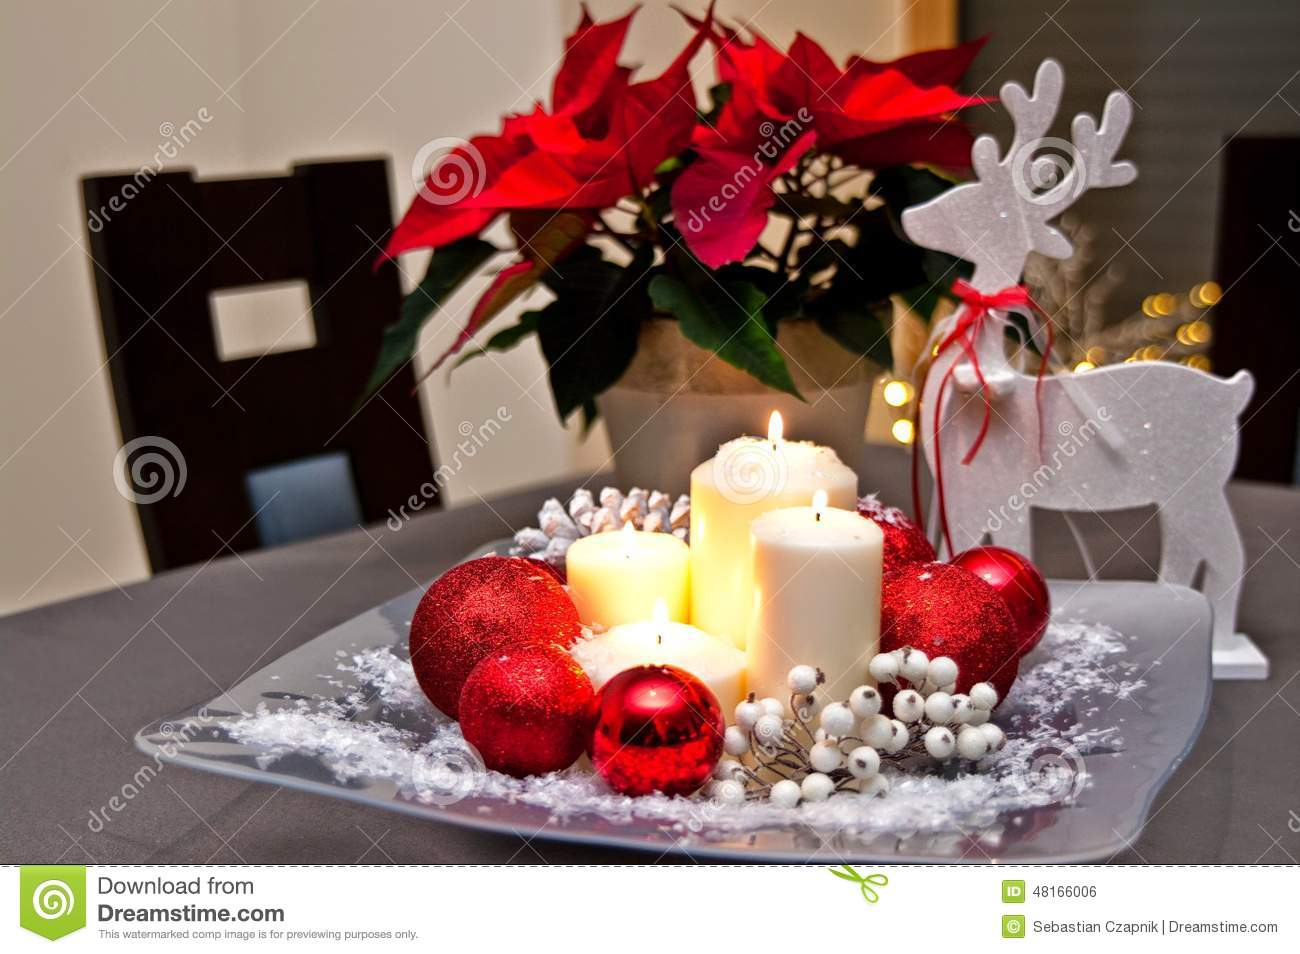 #BC0F18 Christmas Table Decoration Stock Photo Image: 48166006 5271 decoration table noel mauve 1300x954 px @ aertt.com